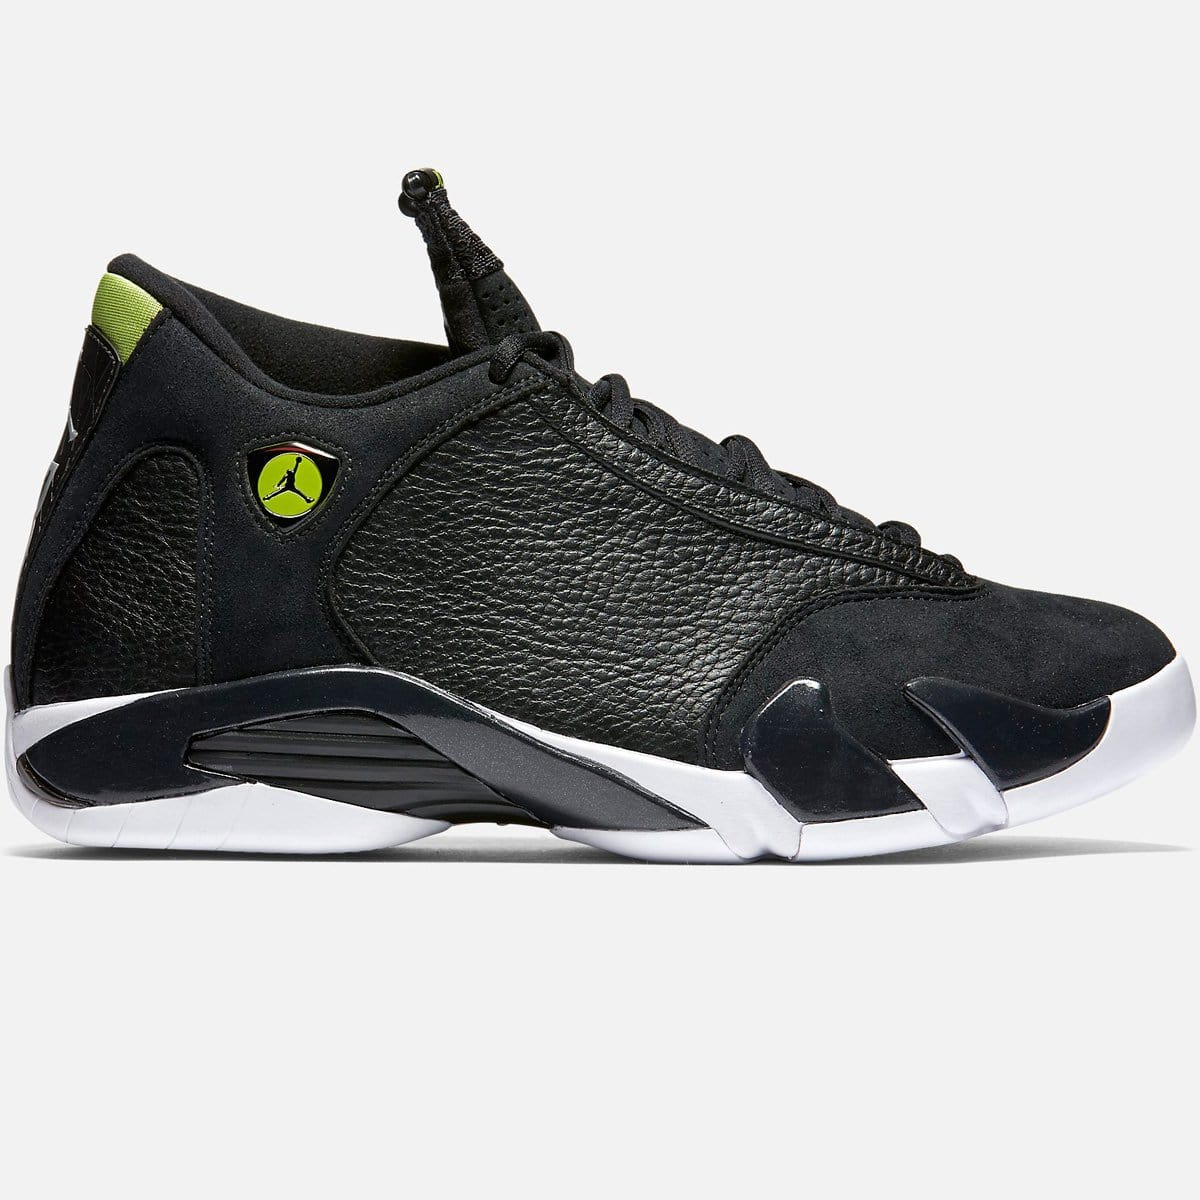 Jordan Air Jordan 14 Retro 'Black/Vivid Green' (Black/Vivid Green-White)